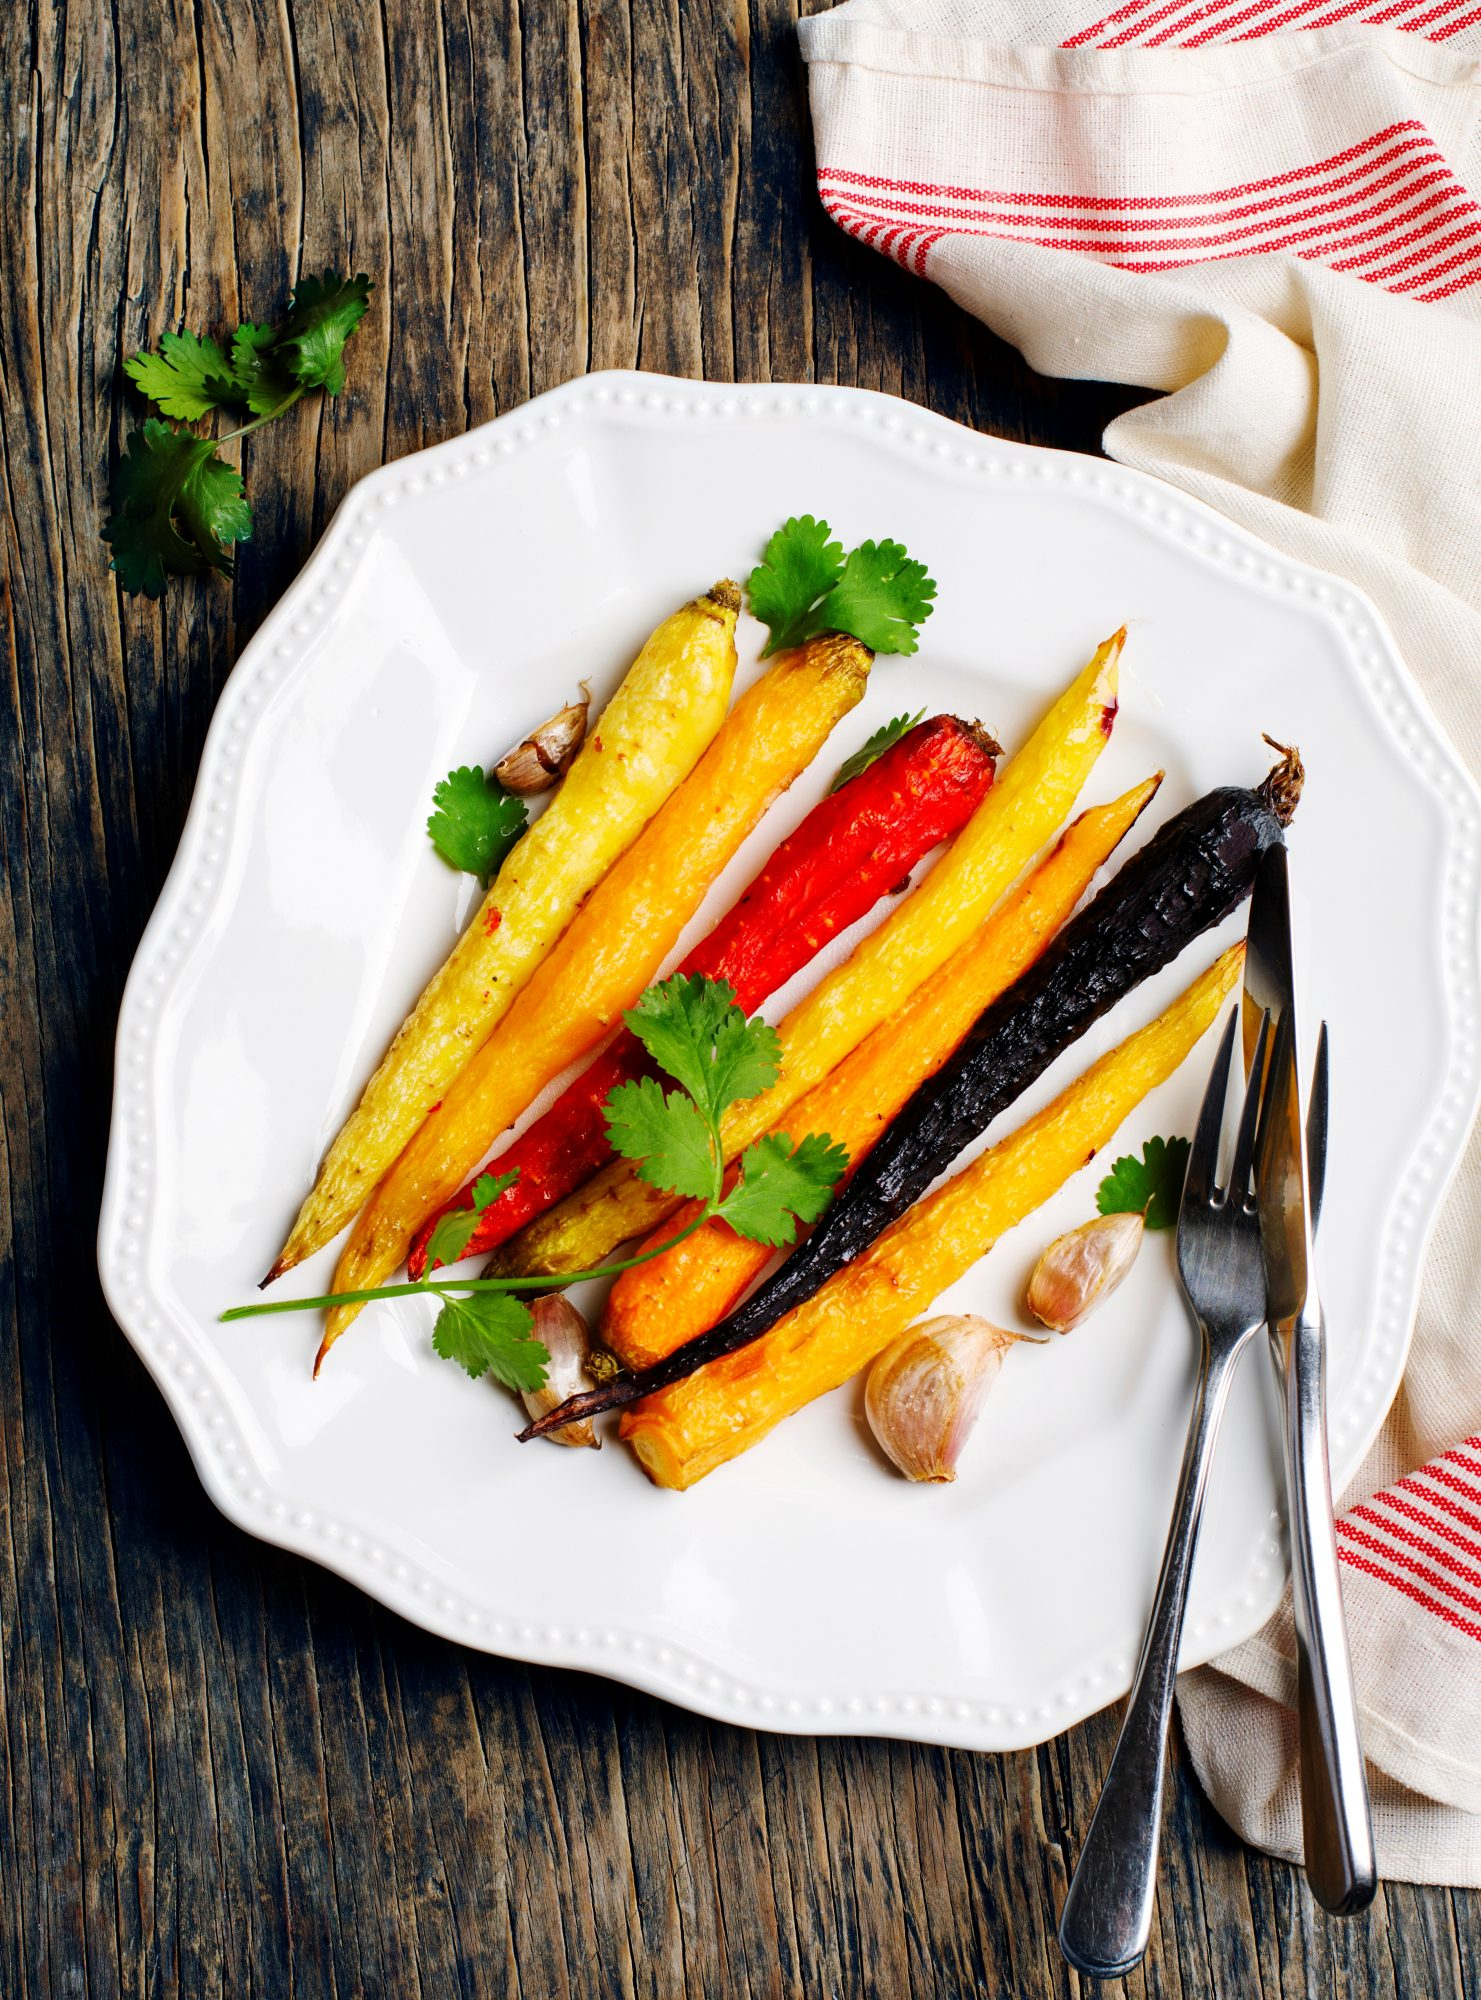 Baked carrots on a plate, top view